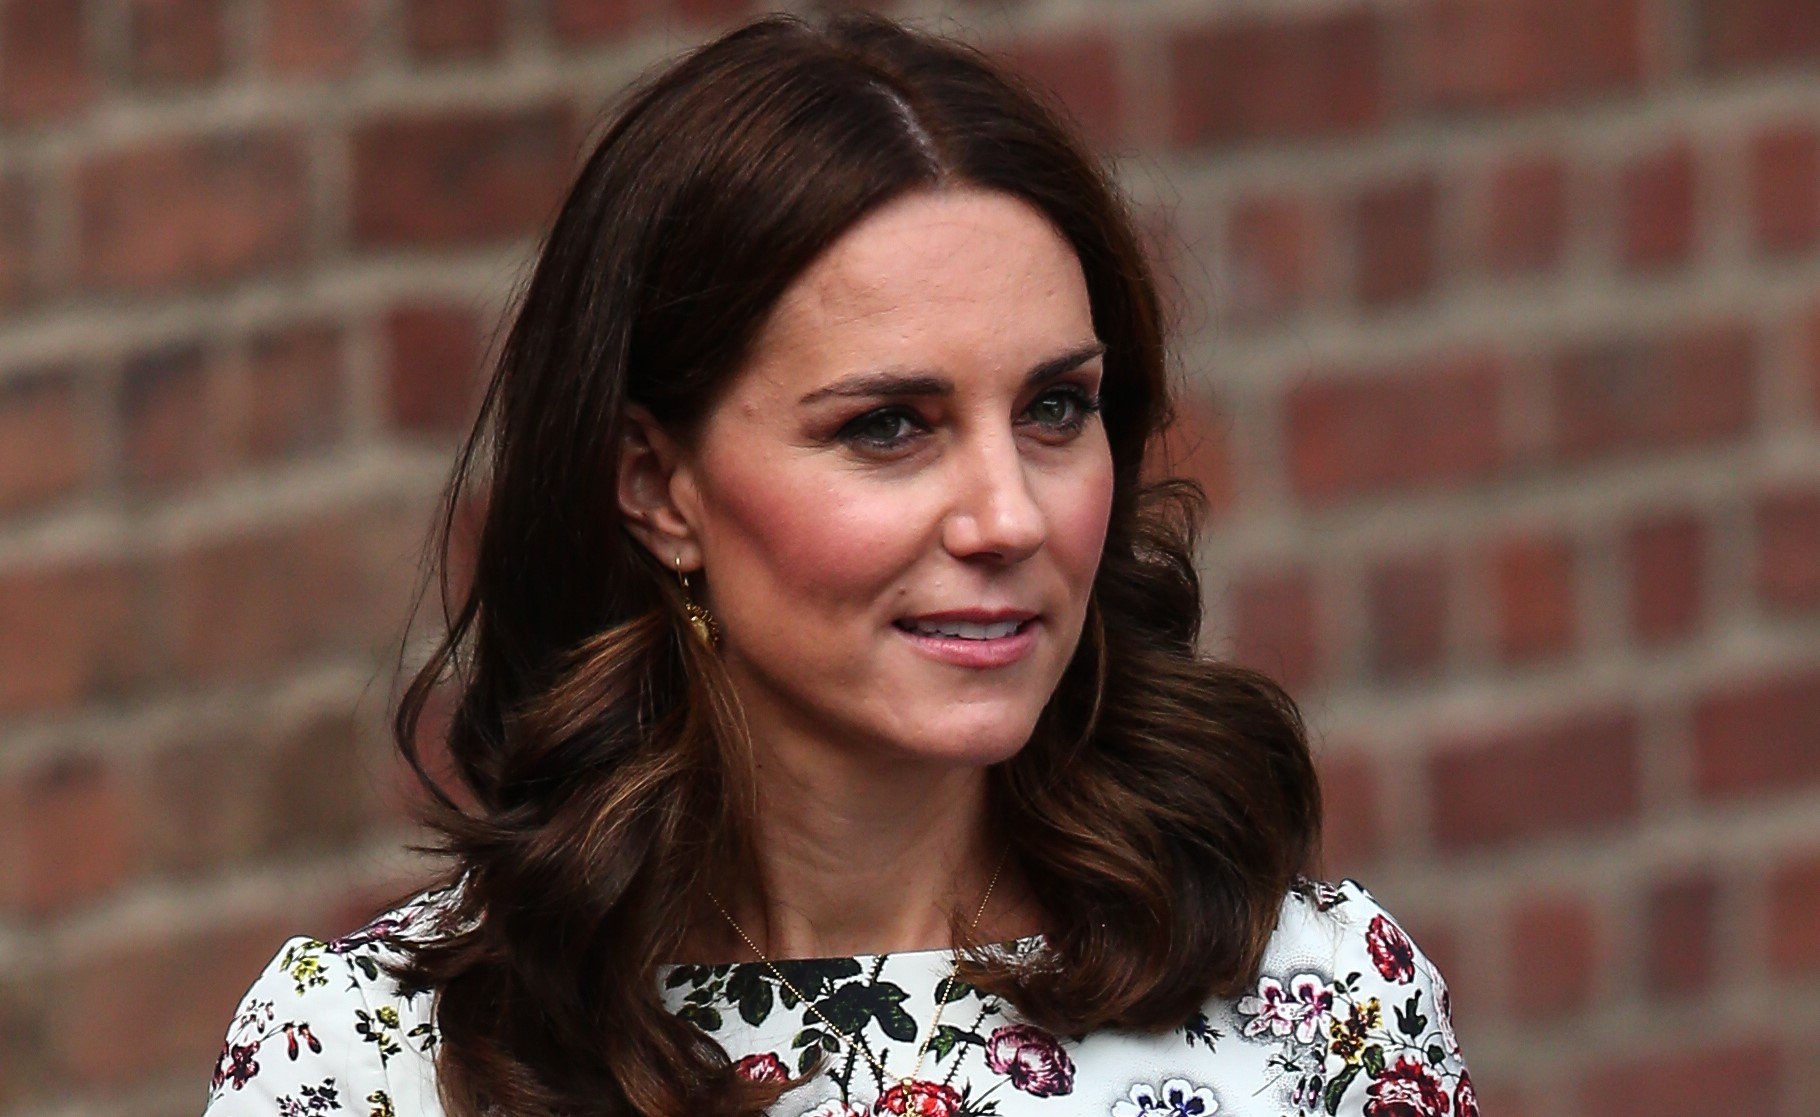 BREAKING! Duchess of Cambridge Gives Birth to Third Child